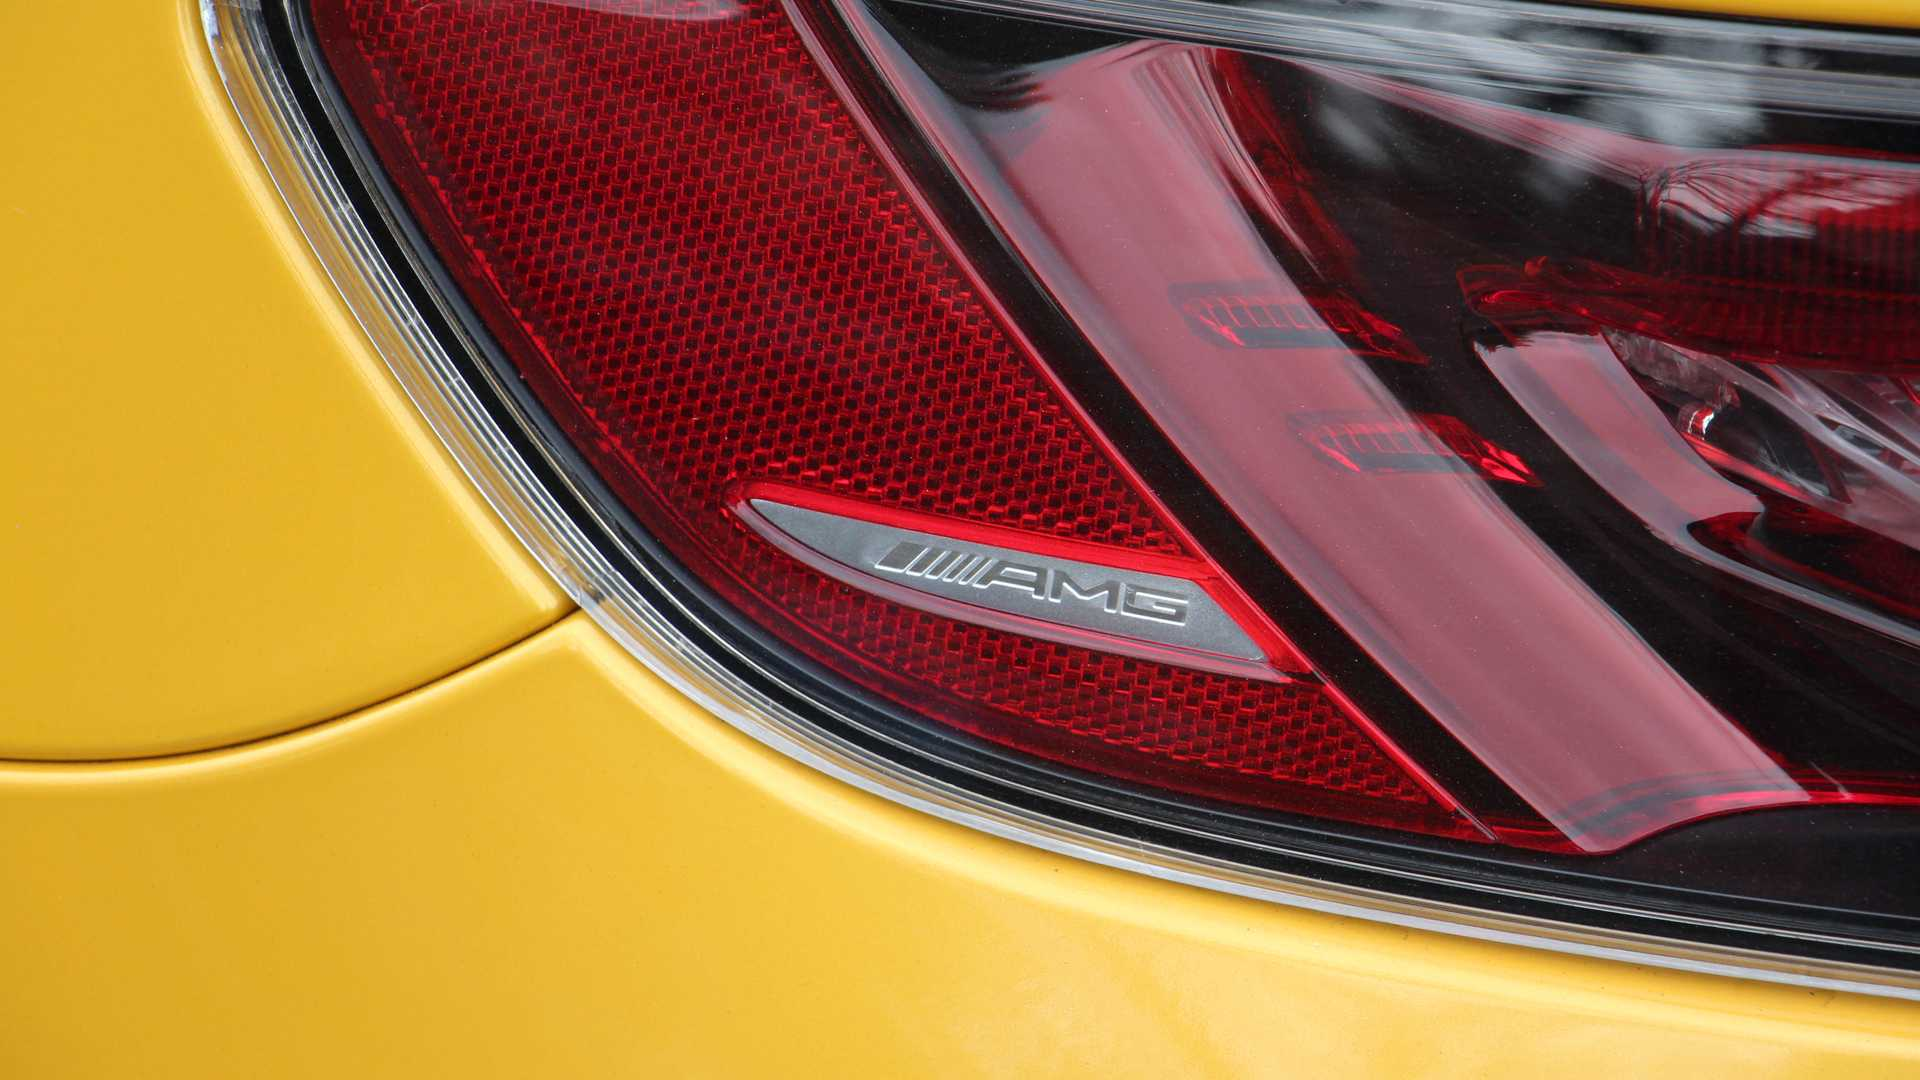 2020-mercedes-amg-gt-r-driving-notes.jpg